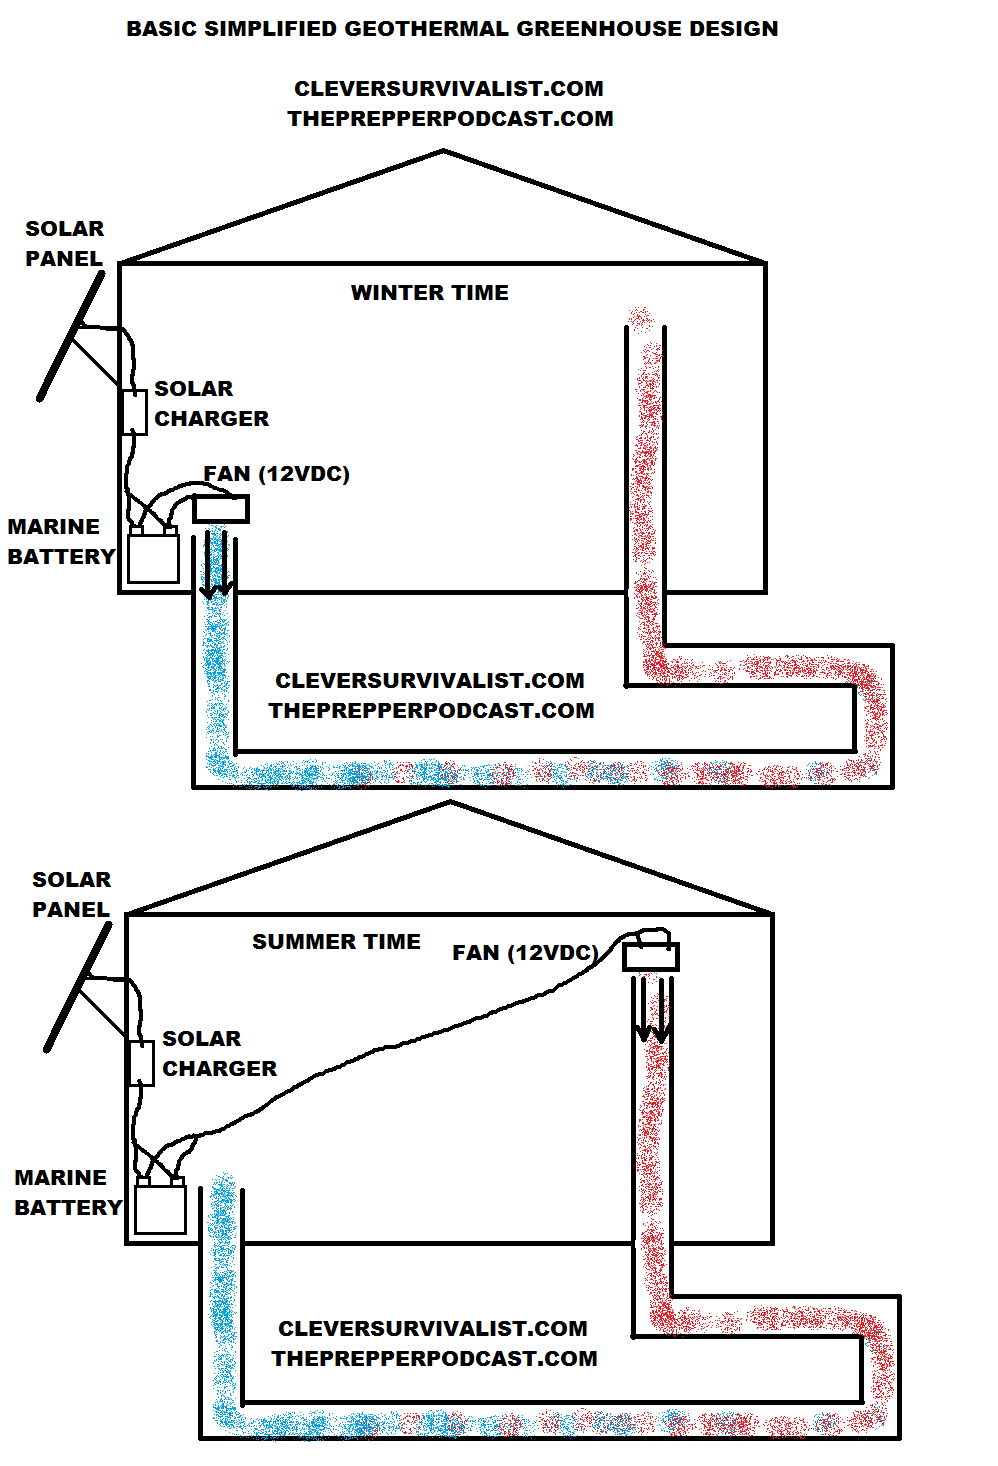 how does forced air geothermal energy work for year round plants design [ 998 x 1466 Pixel ]